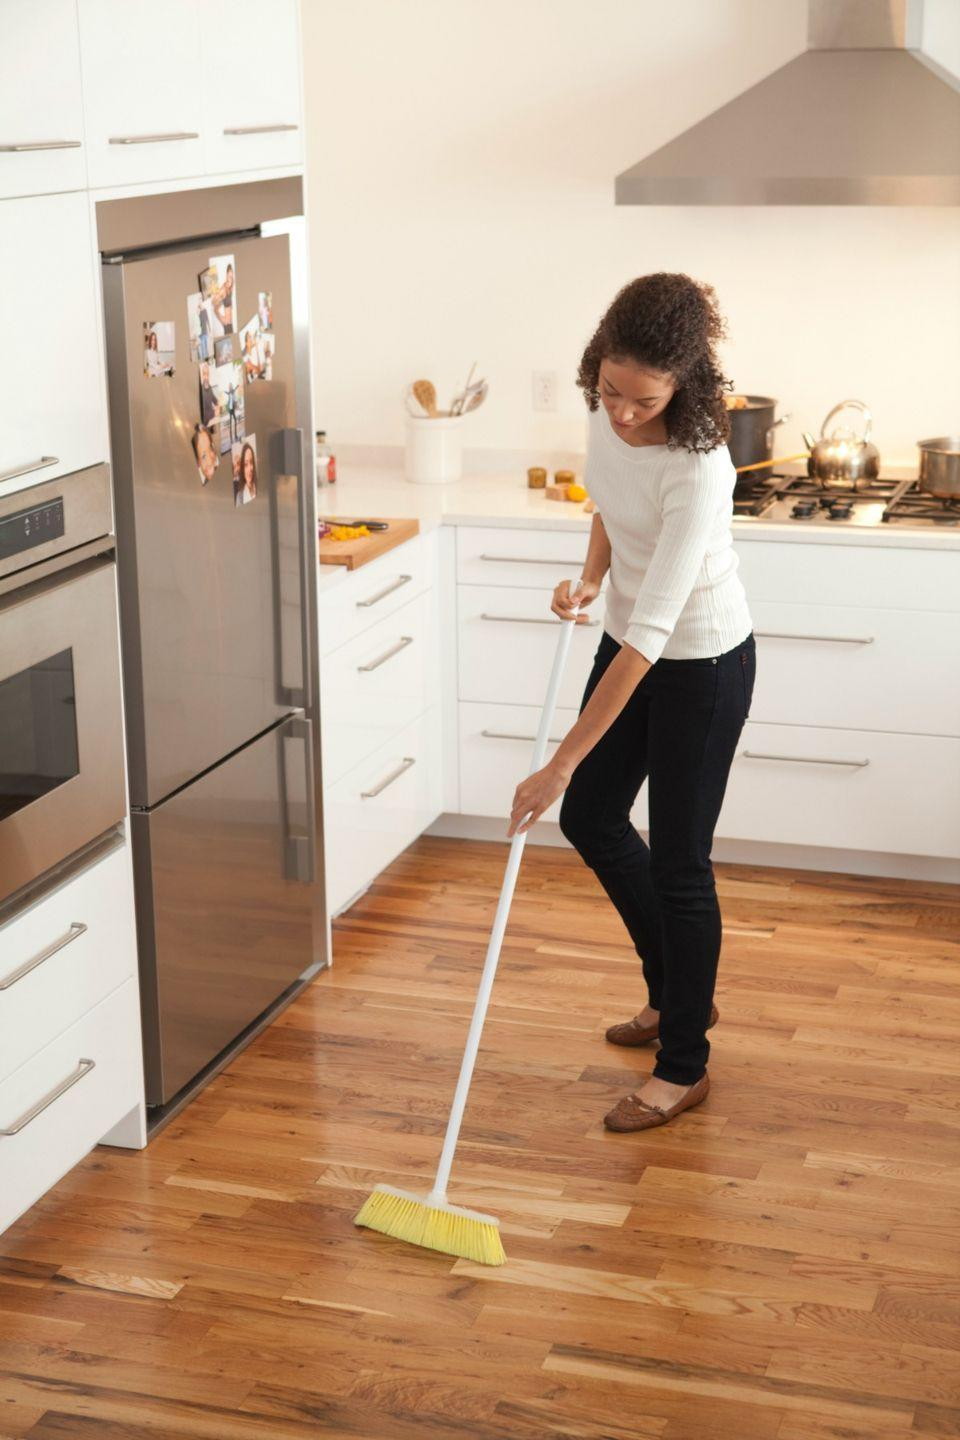 "<p>According to <em>Real Simple</em>,<a href=""https://www.realsimple.com/home-organizing/cleaning/clean-hardwood-floors"" rel=""nofollow noopener"" target=""_blank"" data-ylk=""slk:vinegar is the best cleaner for hardwood floors"" class=""link rapid-noclick-resp""> vinegar is the best cleaner for hardwood floors</a>. Melissa Witulski, the business operations manager for <a href=""https://www.merrymaids.com/"" rel=""nofollow noopener"" target=""_blank"" data-ylk=""slk:Merry Maids"" class=""link rapid-noclick-resp"">Merry Maids</a>, suggests making a solution by mixing a quarter cup of apple cider vinegar (or half a cup of white vinegar) with a gallon of warm water.</p><p>Start by sweeping the surface to remove any dust particles, then fill a bucket with the homemade vinegar solution. After that, begin cleaning, using a flat mop with a microfiber cover. Make sure you don't get your wood floors<em> too</em> wet, as water can remove the finish or potentially cause warping or deterioration.</p>"